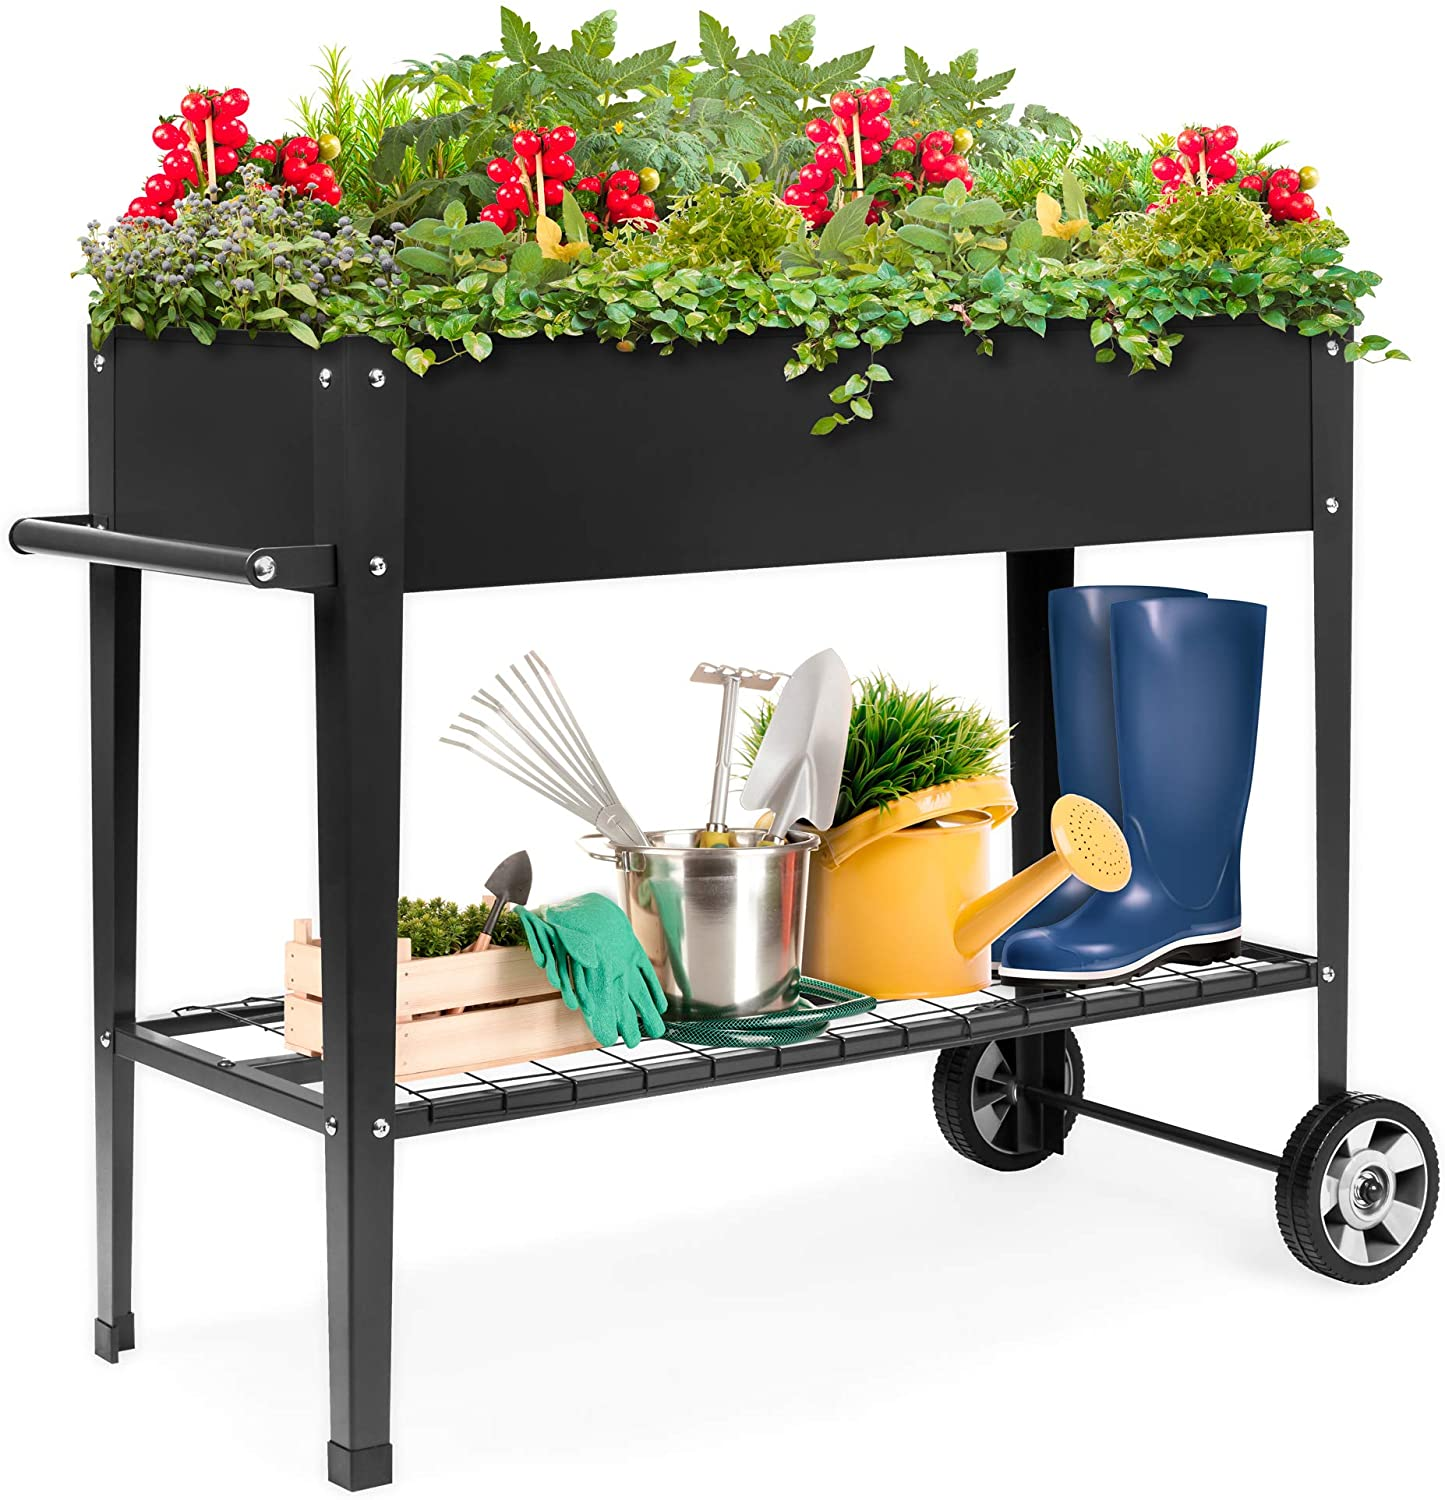 Best Choice Products Elevated Mobile Raised Metal Garden Bed